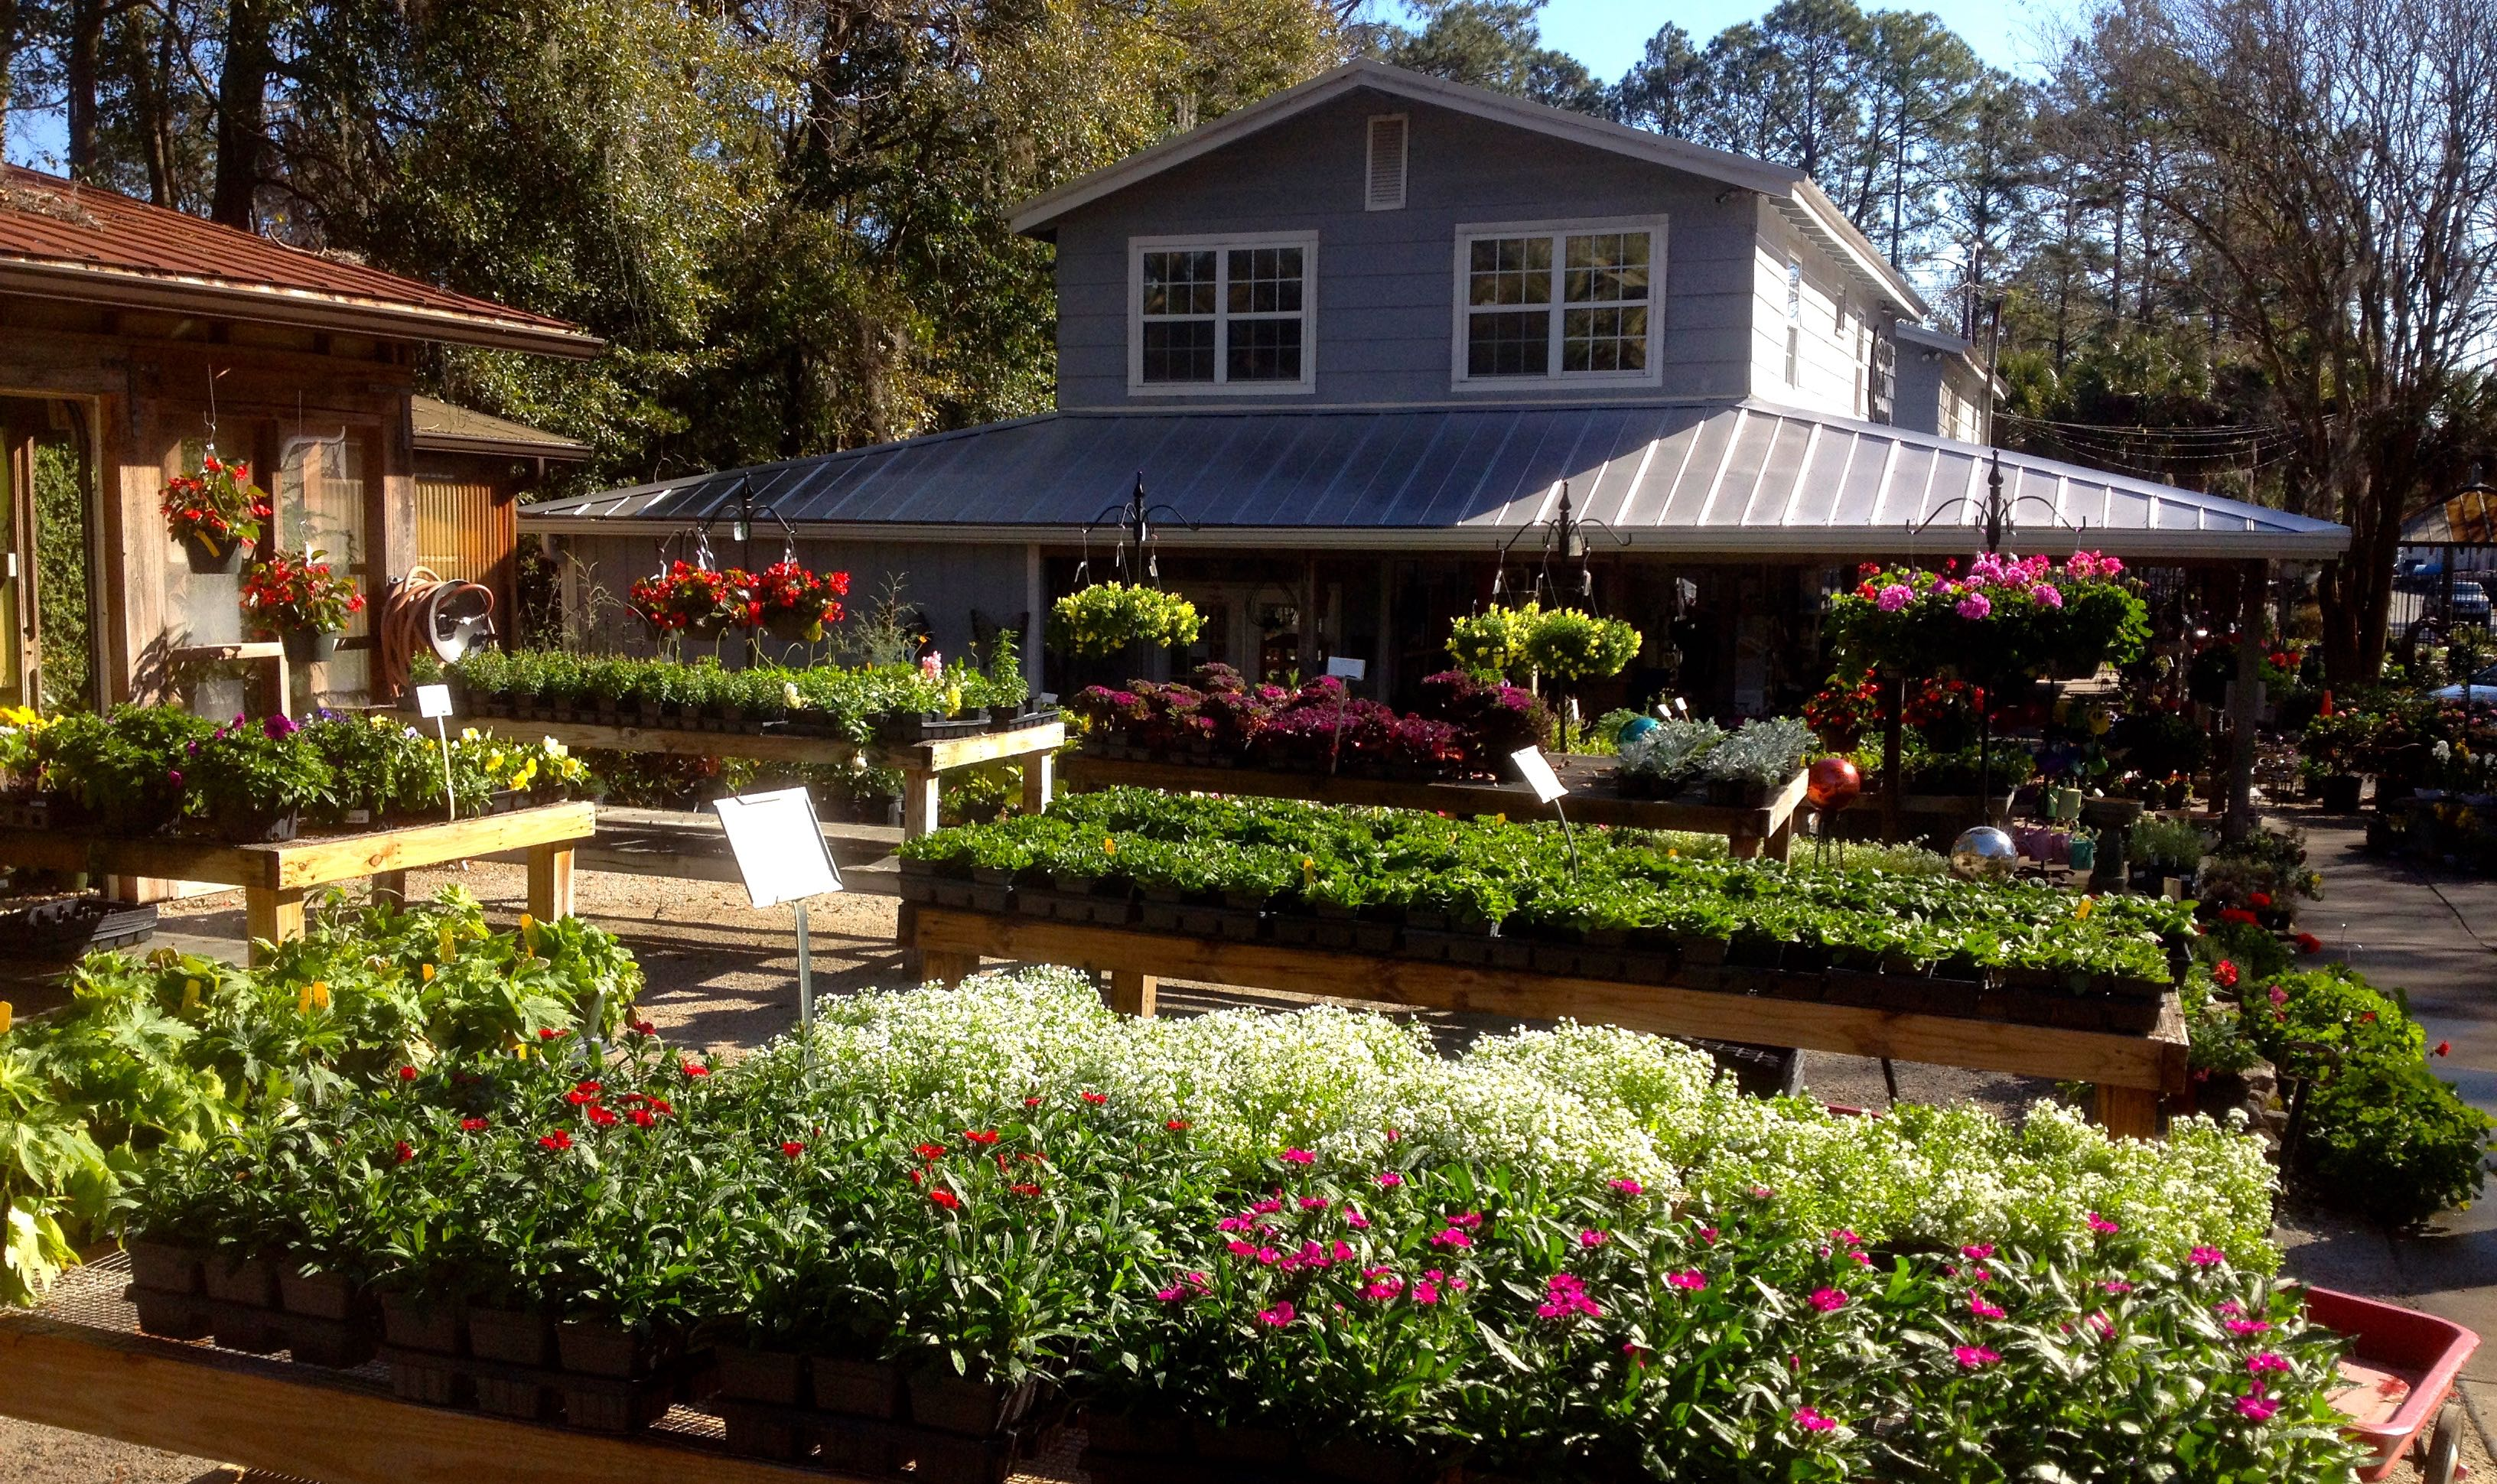 About Garden Gate Nursery